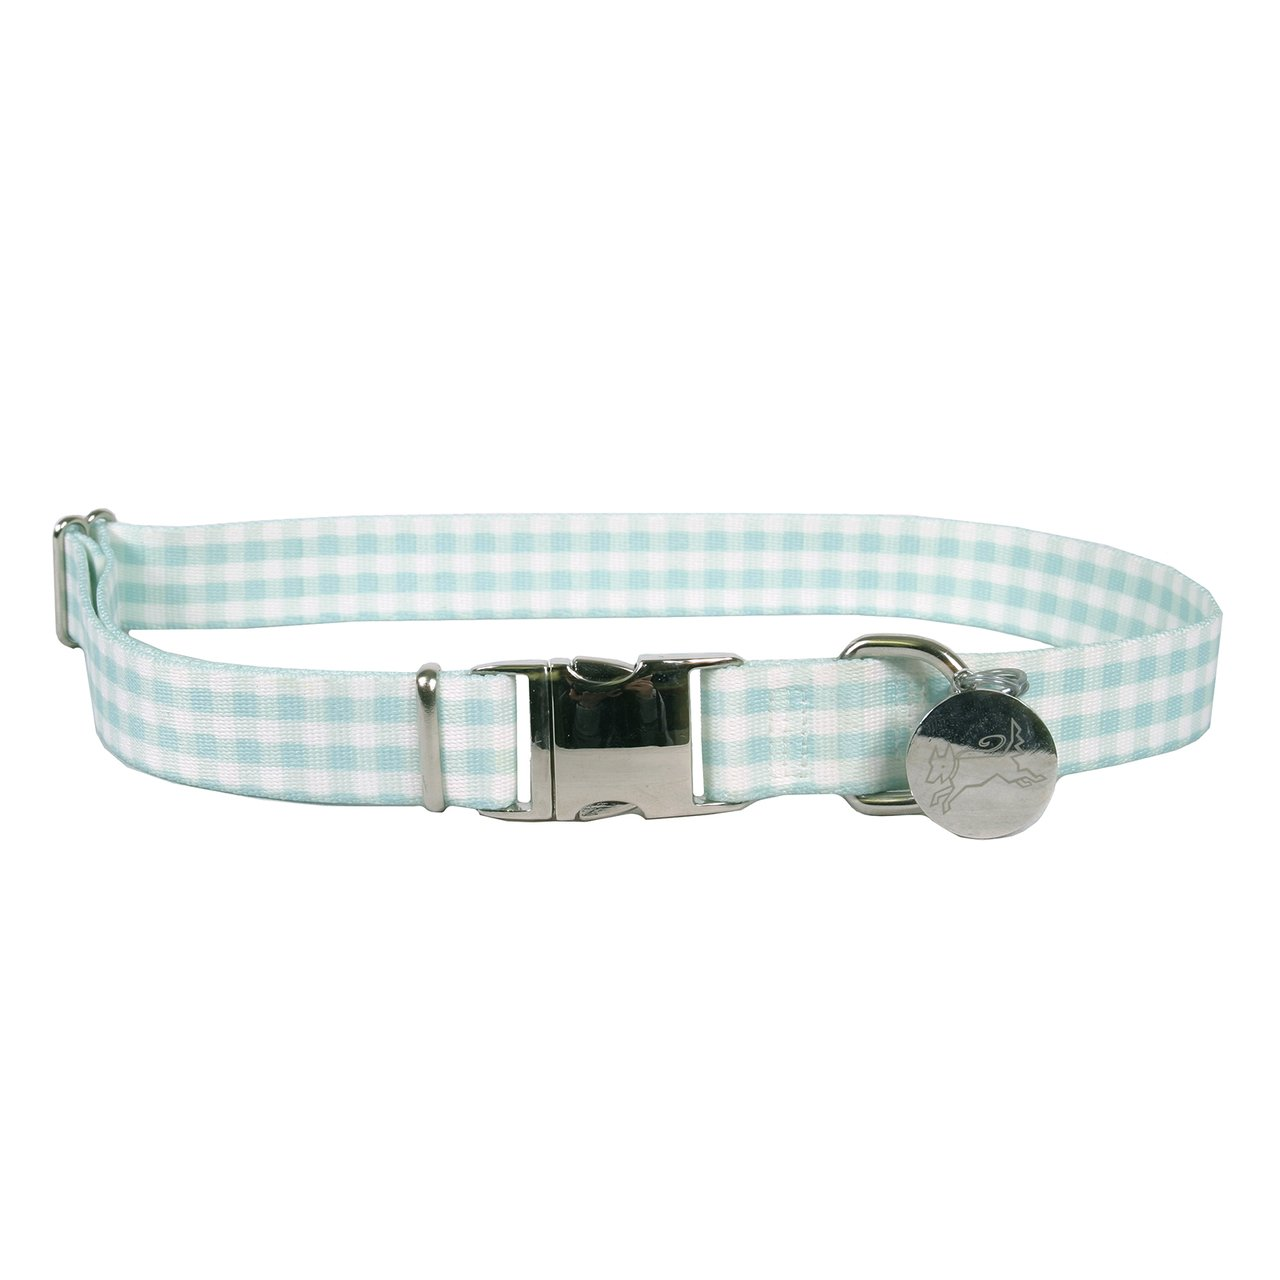 Southern Dawg Gingham Mint Premium Dog Collar - Size Large 18'' - 28'' by Yellow Dog Design